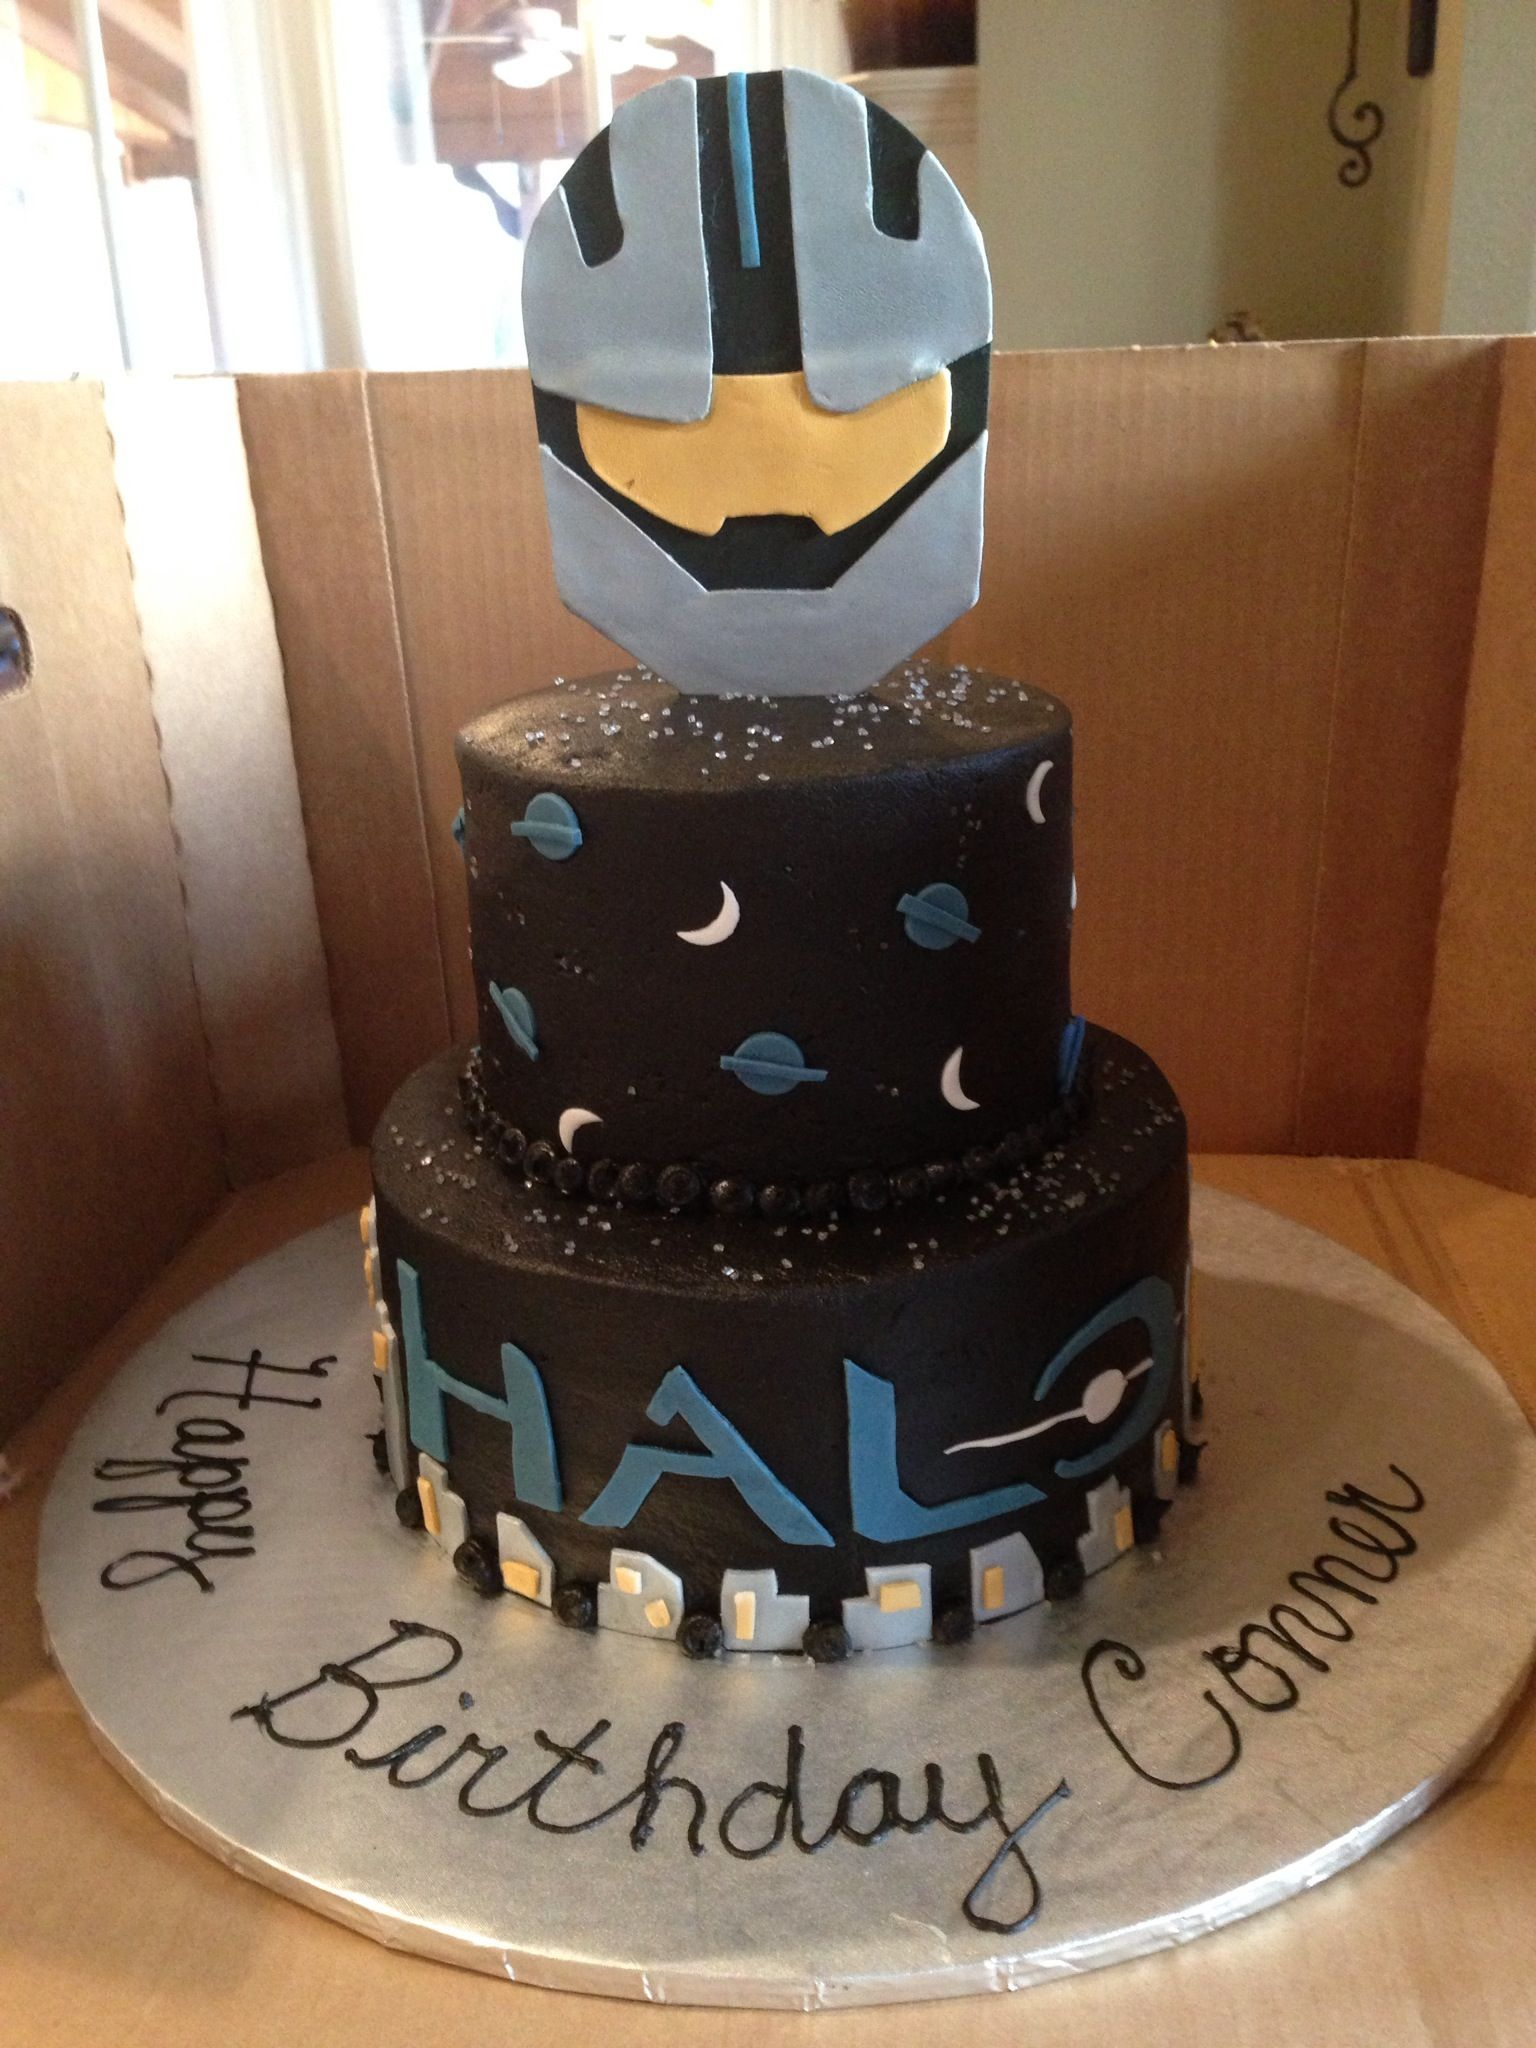 Halo So whos making me this for my birthday Lol trists bday